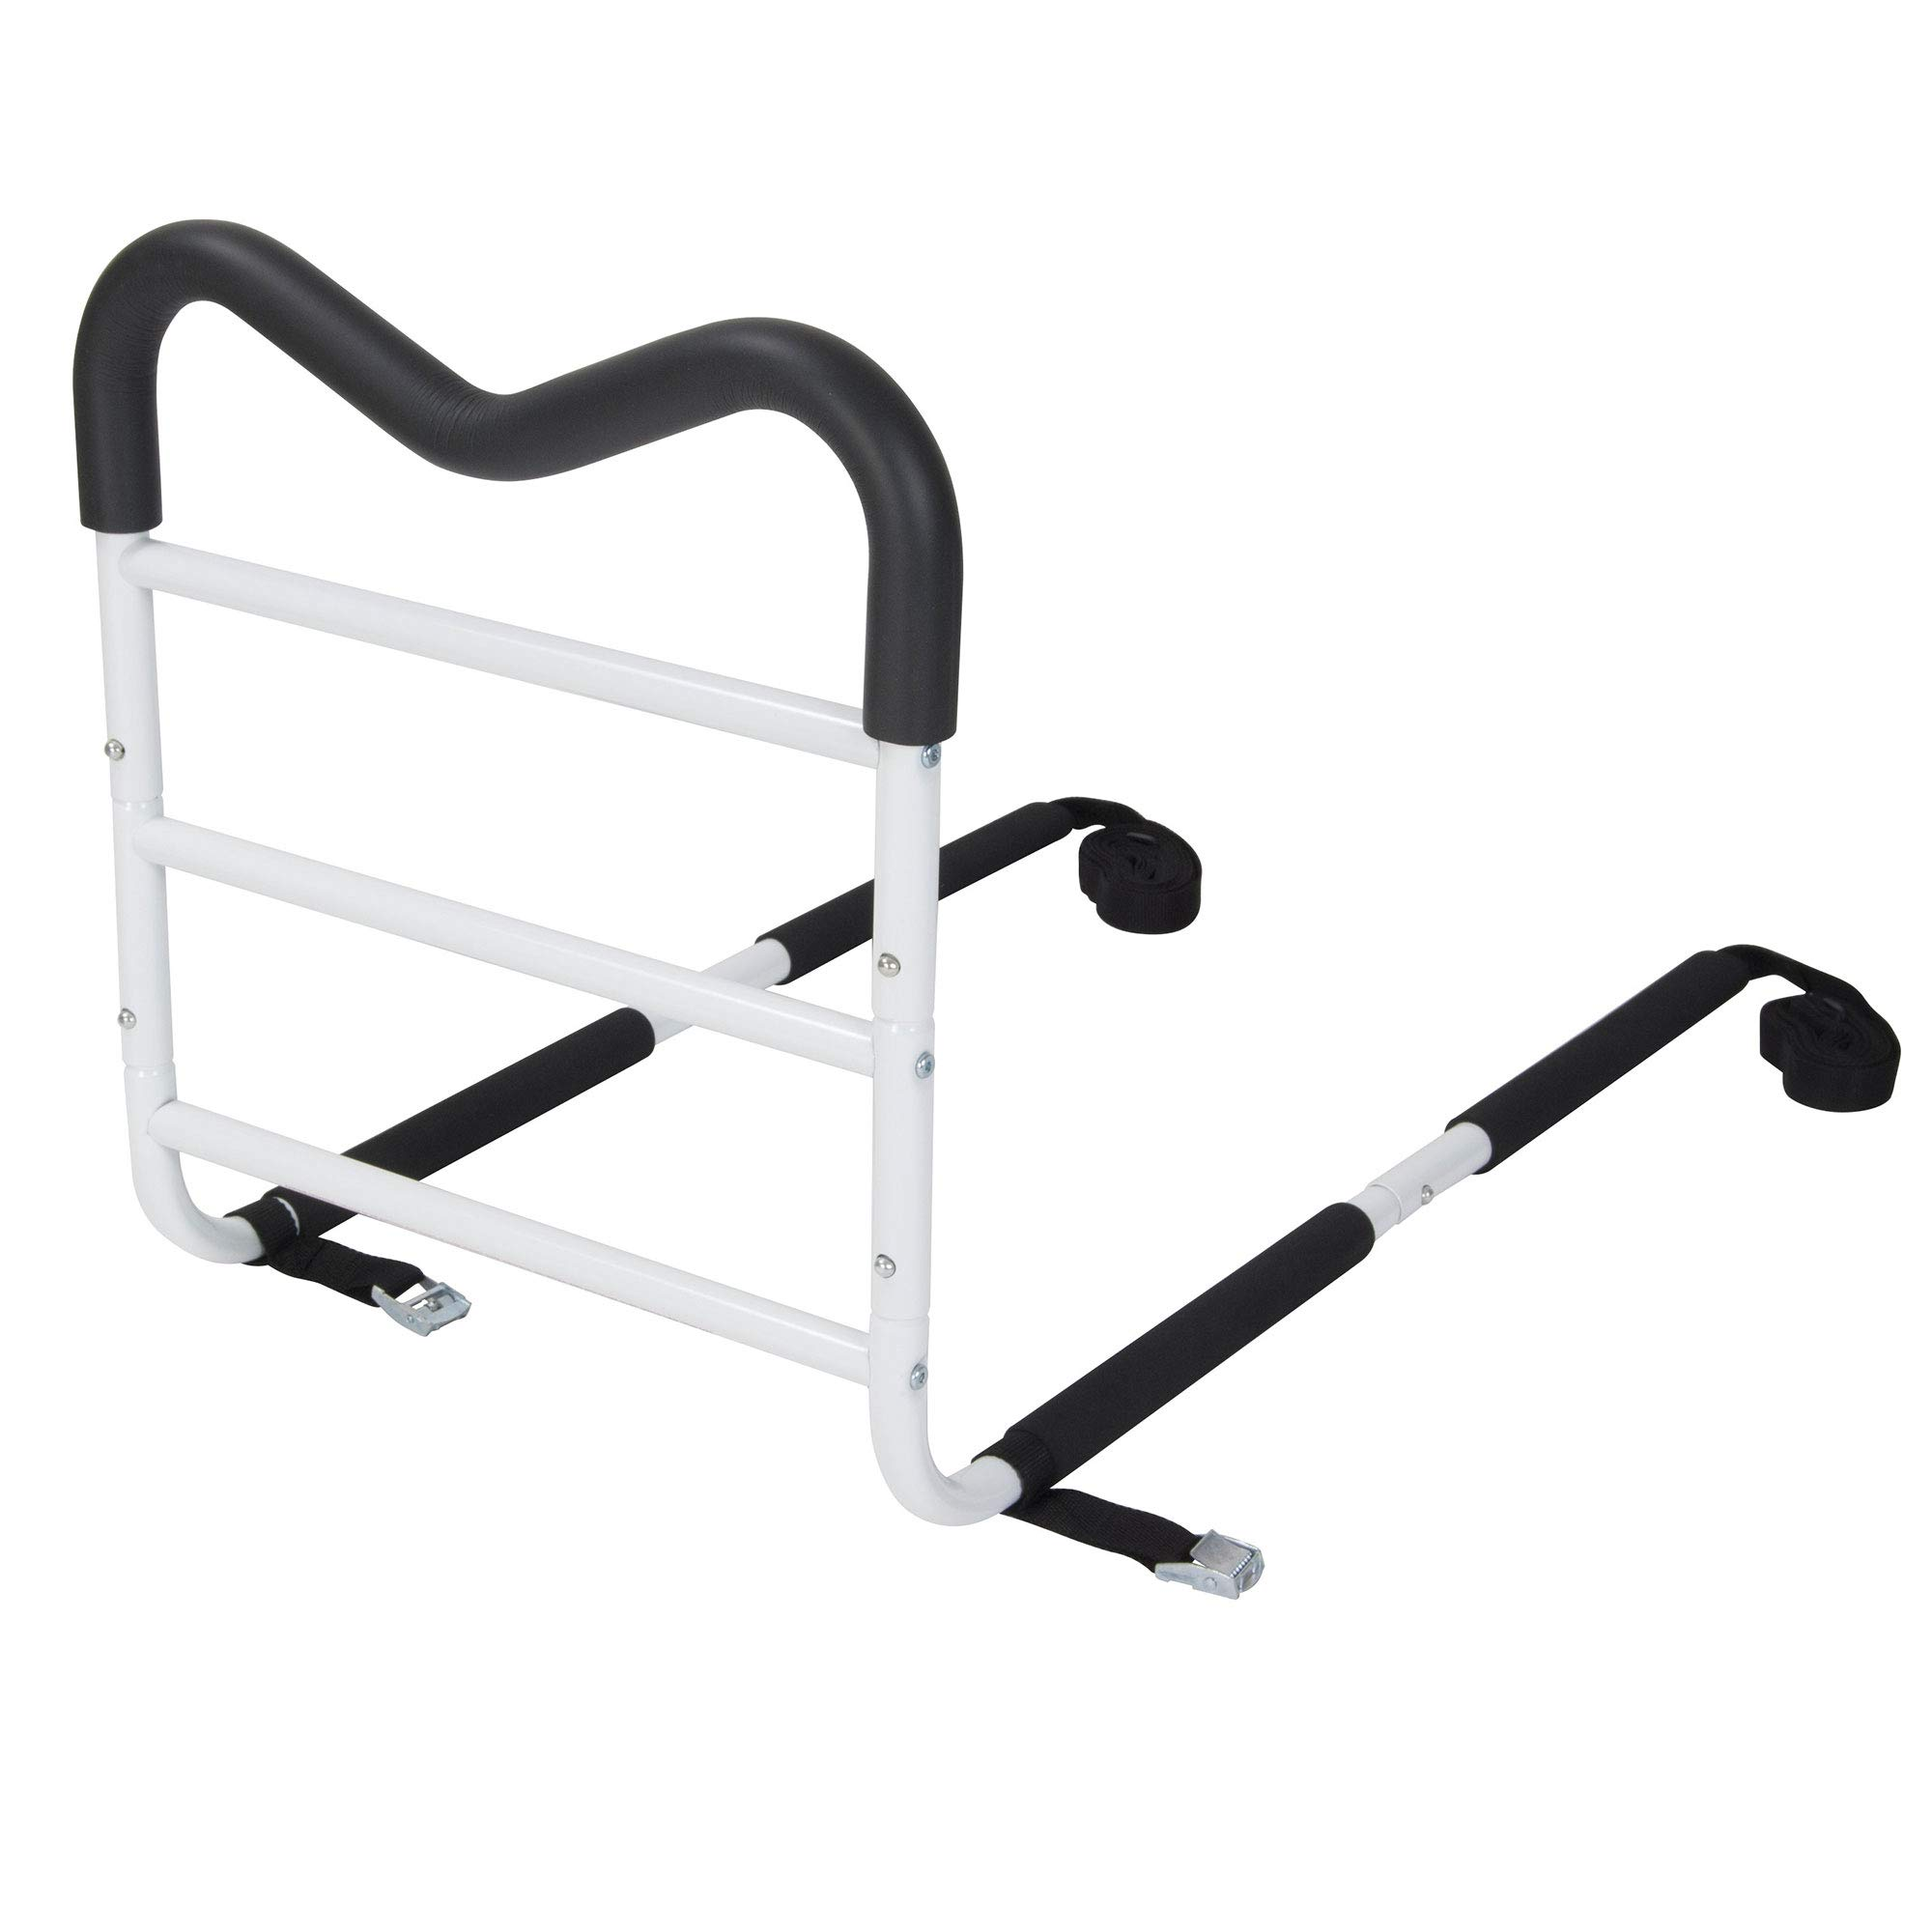 Bios Medical Adjustable M Shaped One Size Fits All Safety Bed Handrail, White by Bios